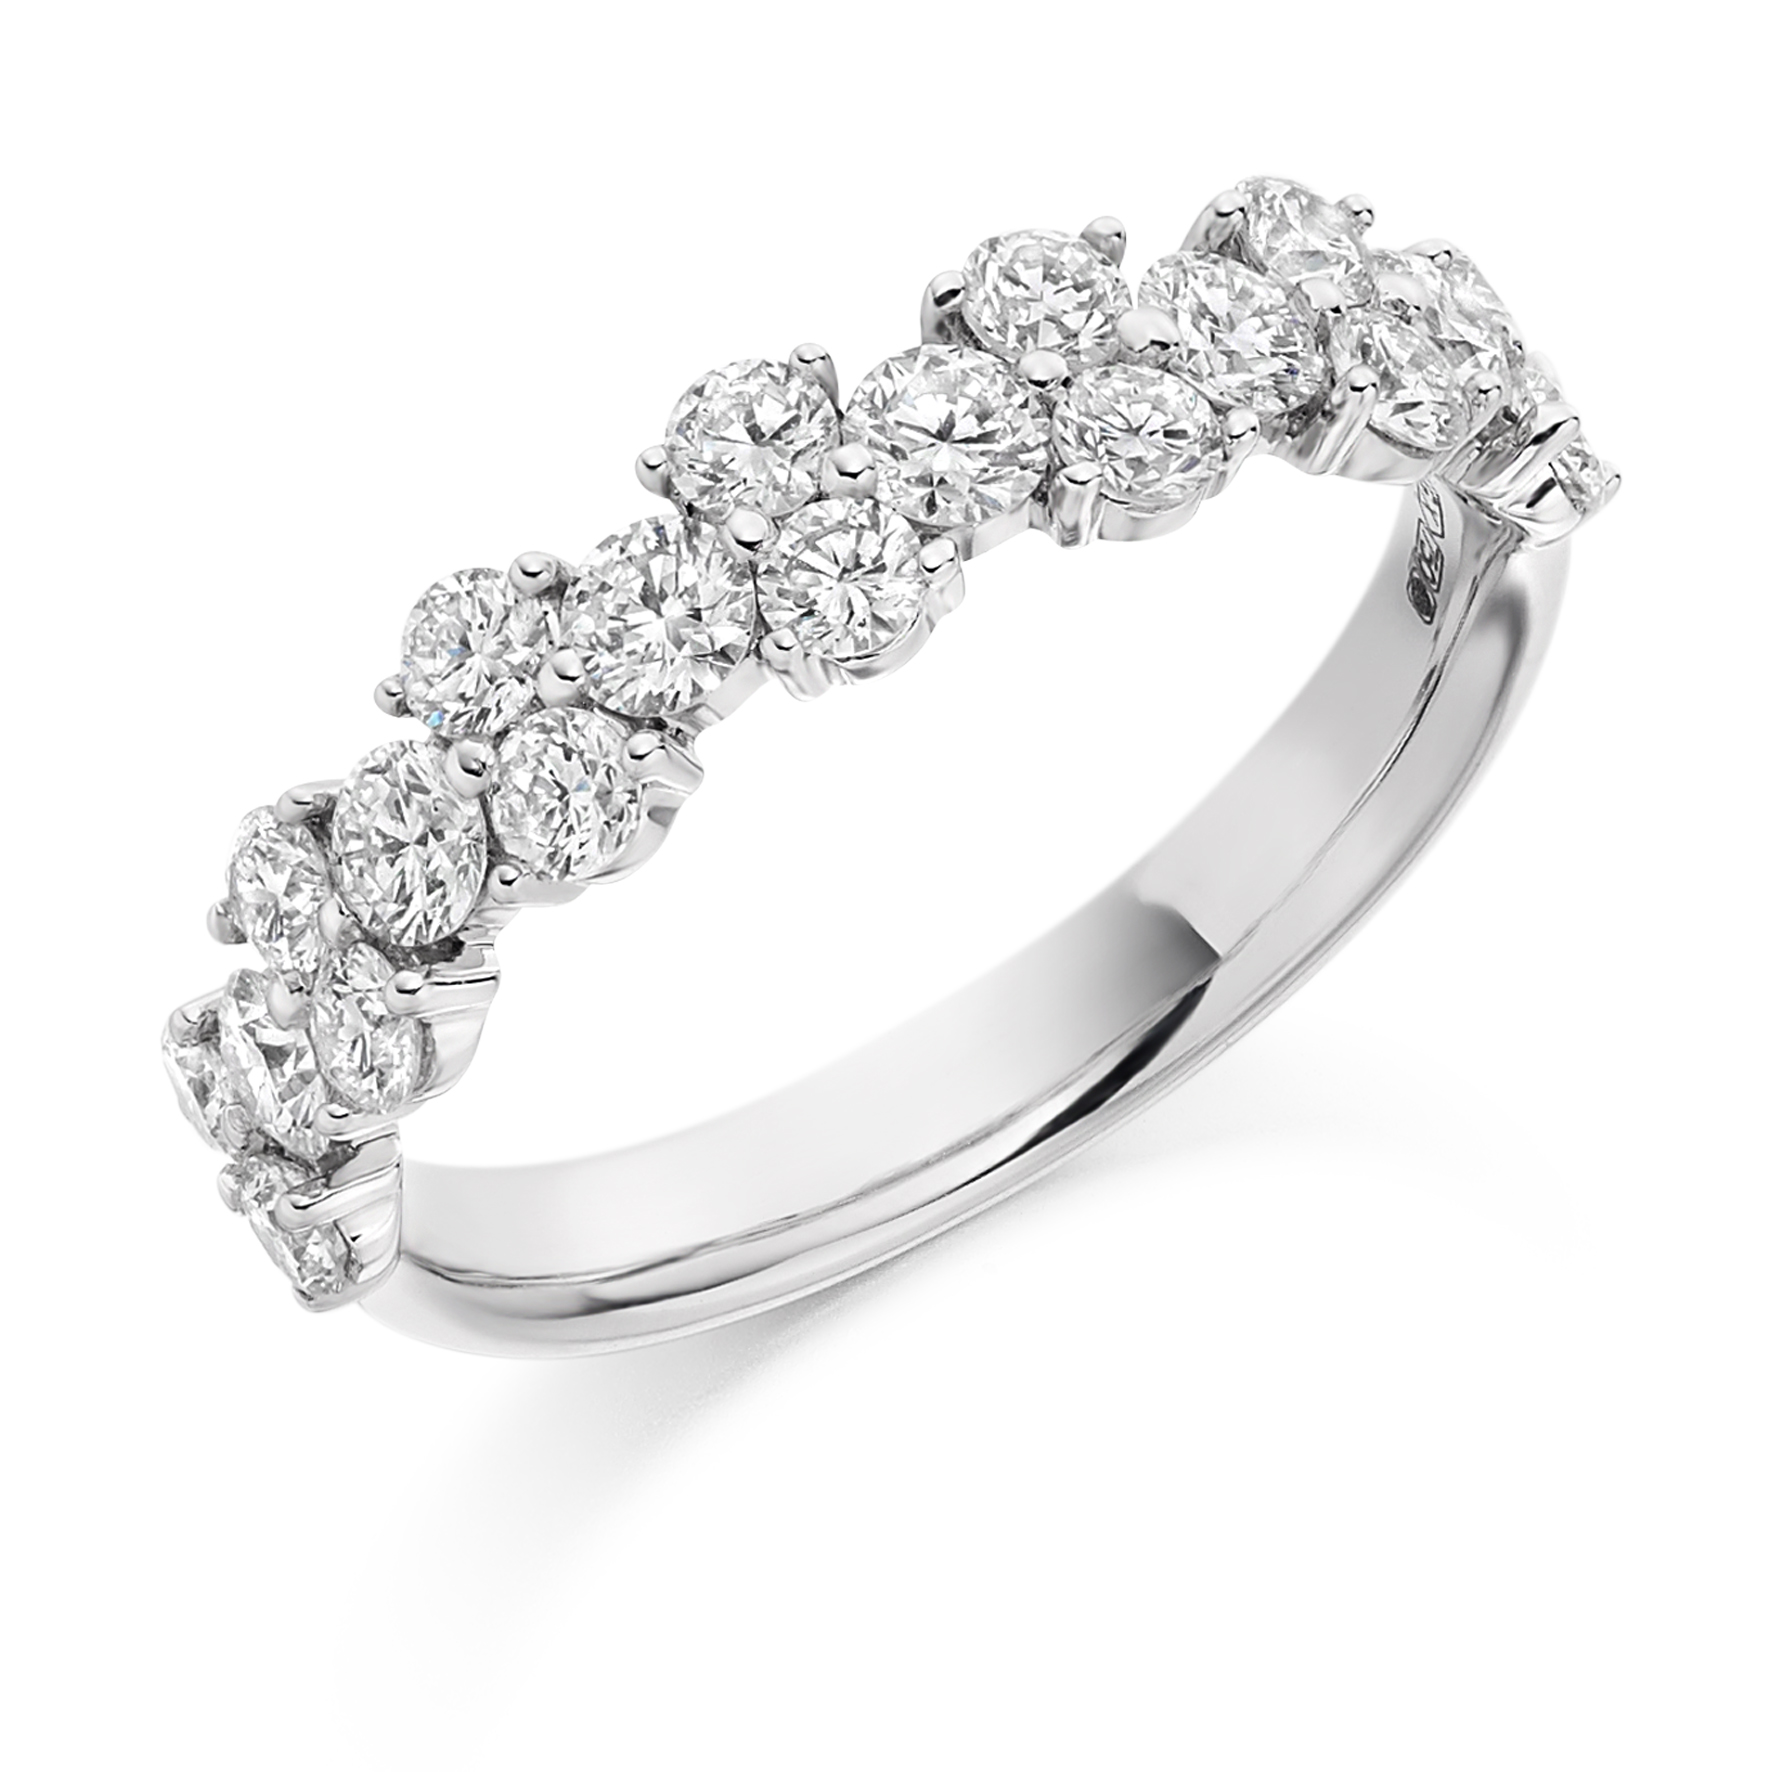 1.20ct brilliant cut diamond claw set ring in 18ct gold.